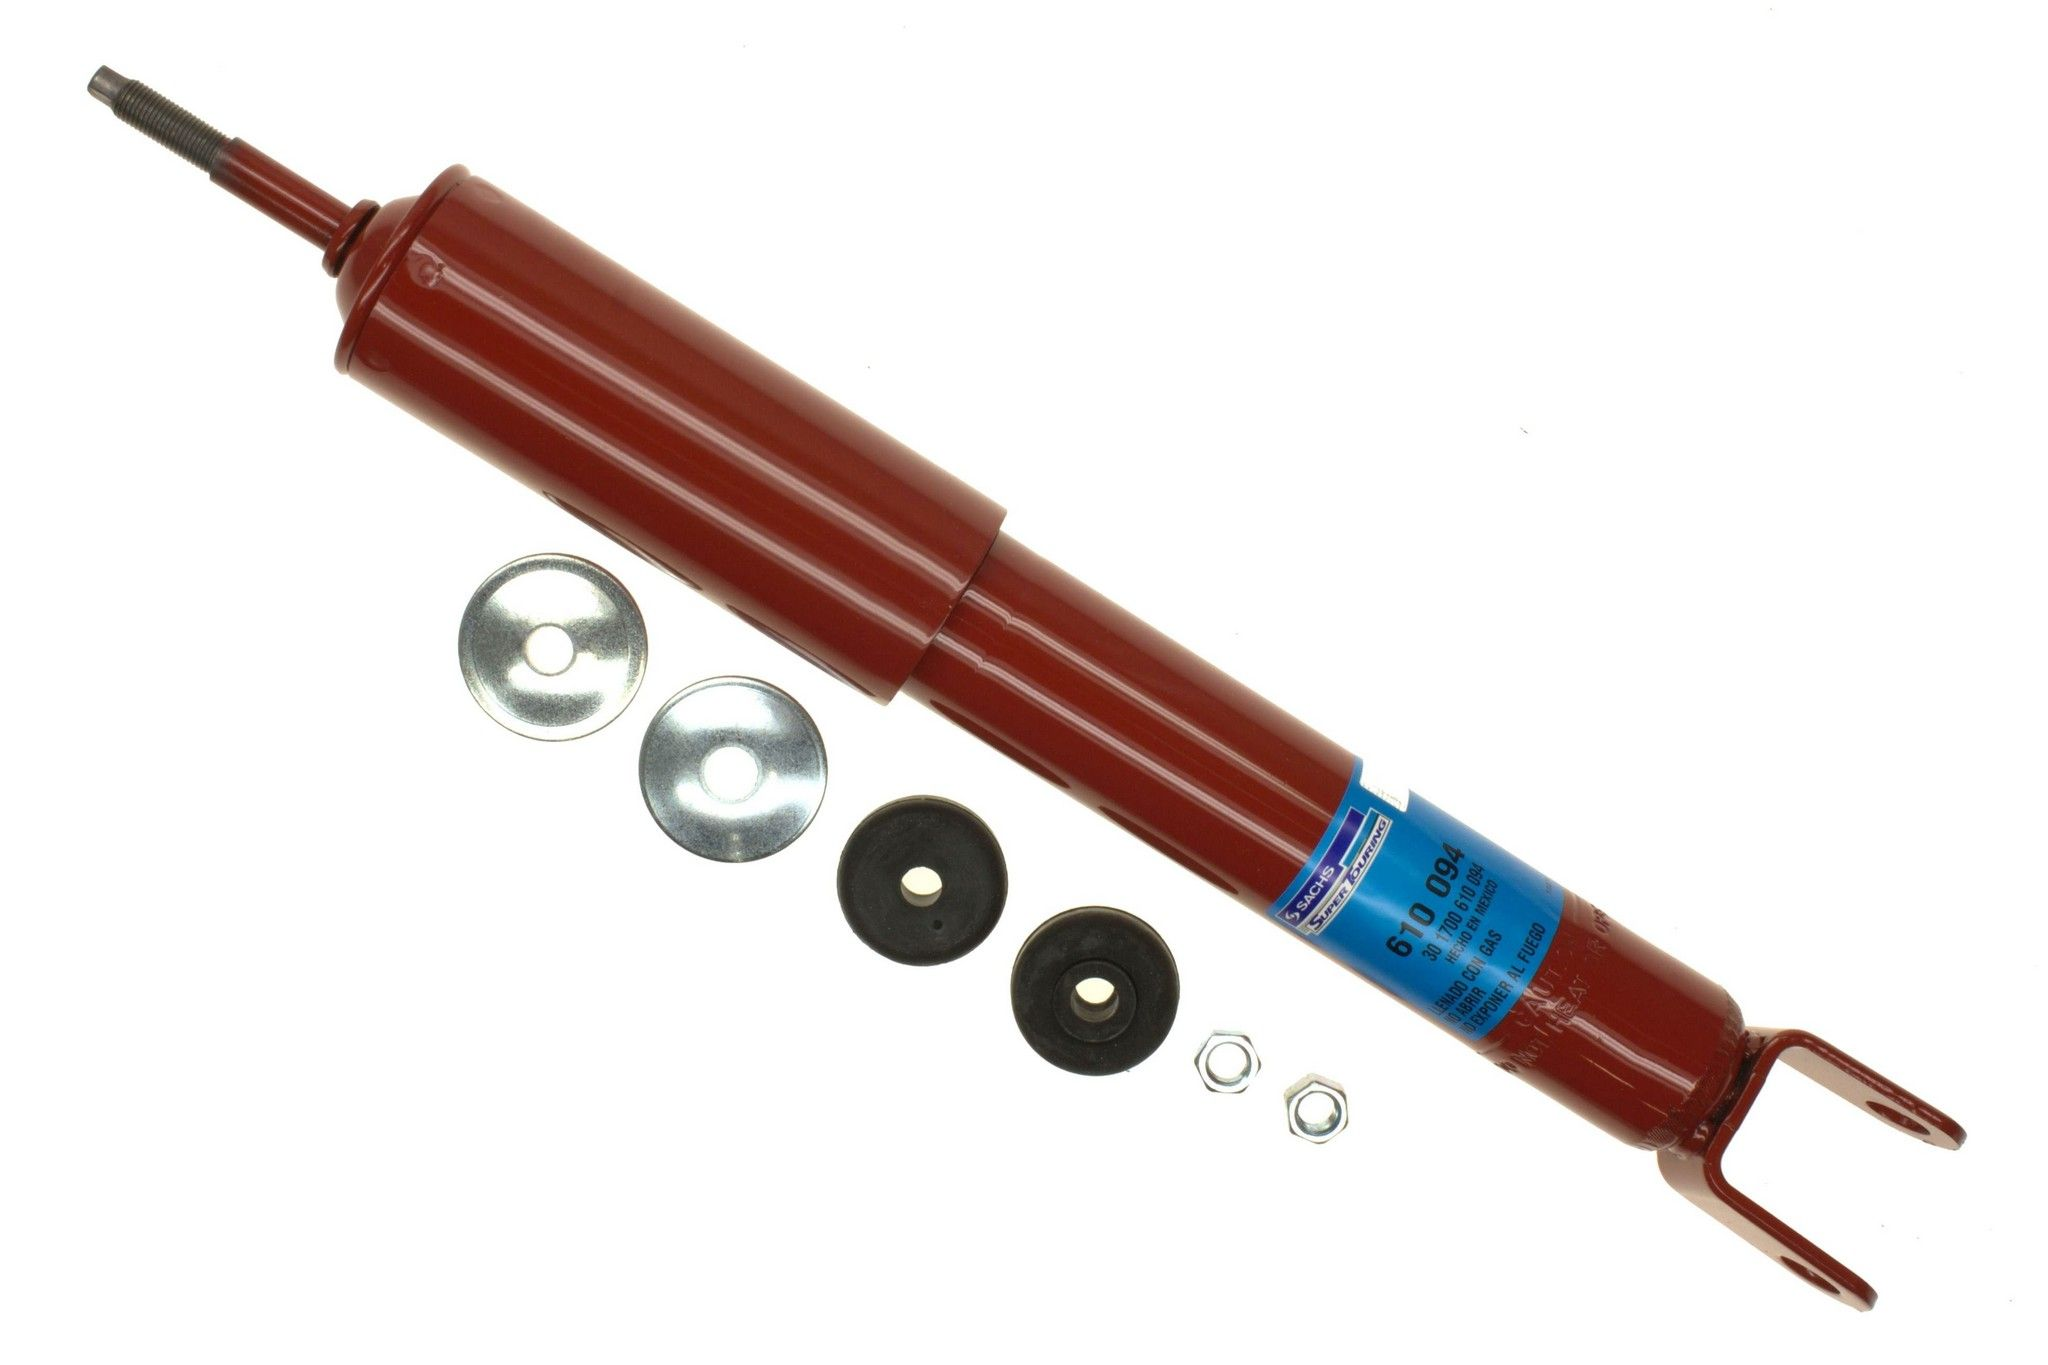 2000 gmc yukon shock absorber front sachs 610 094 with zq1 smooth ride suspension value line